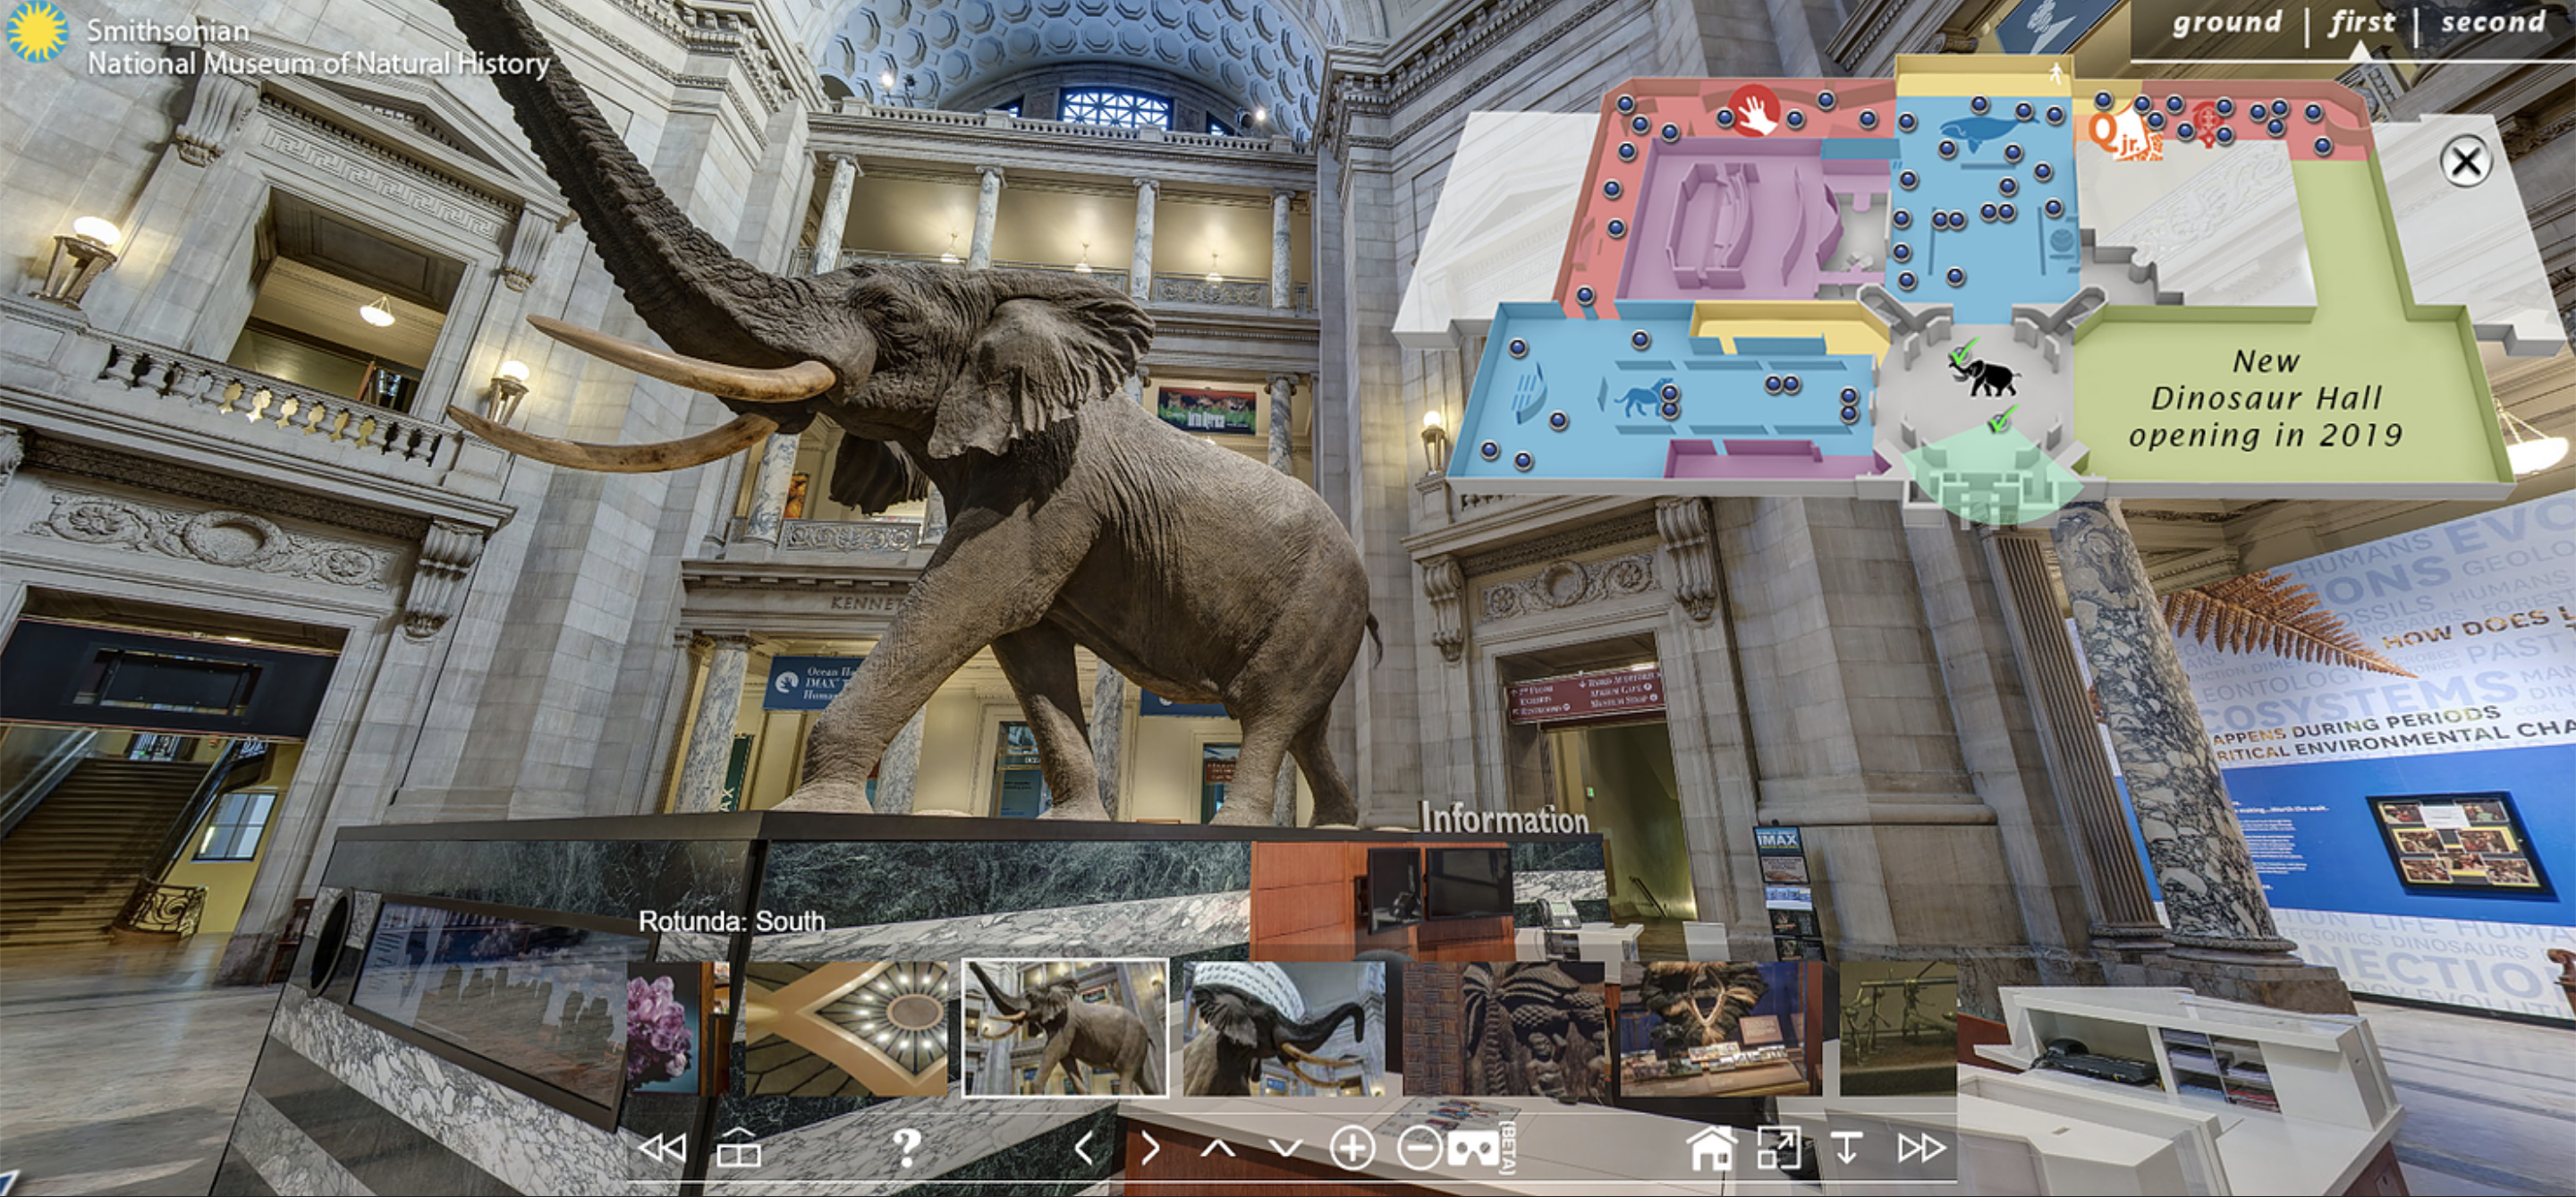 Virtual tour of the National Museum of Natural History in Washington